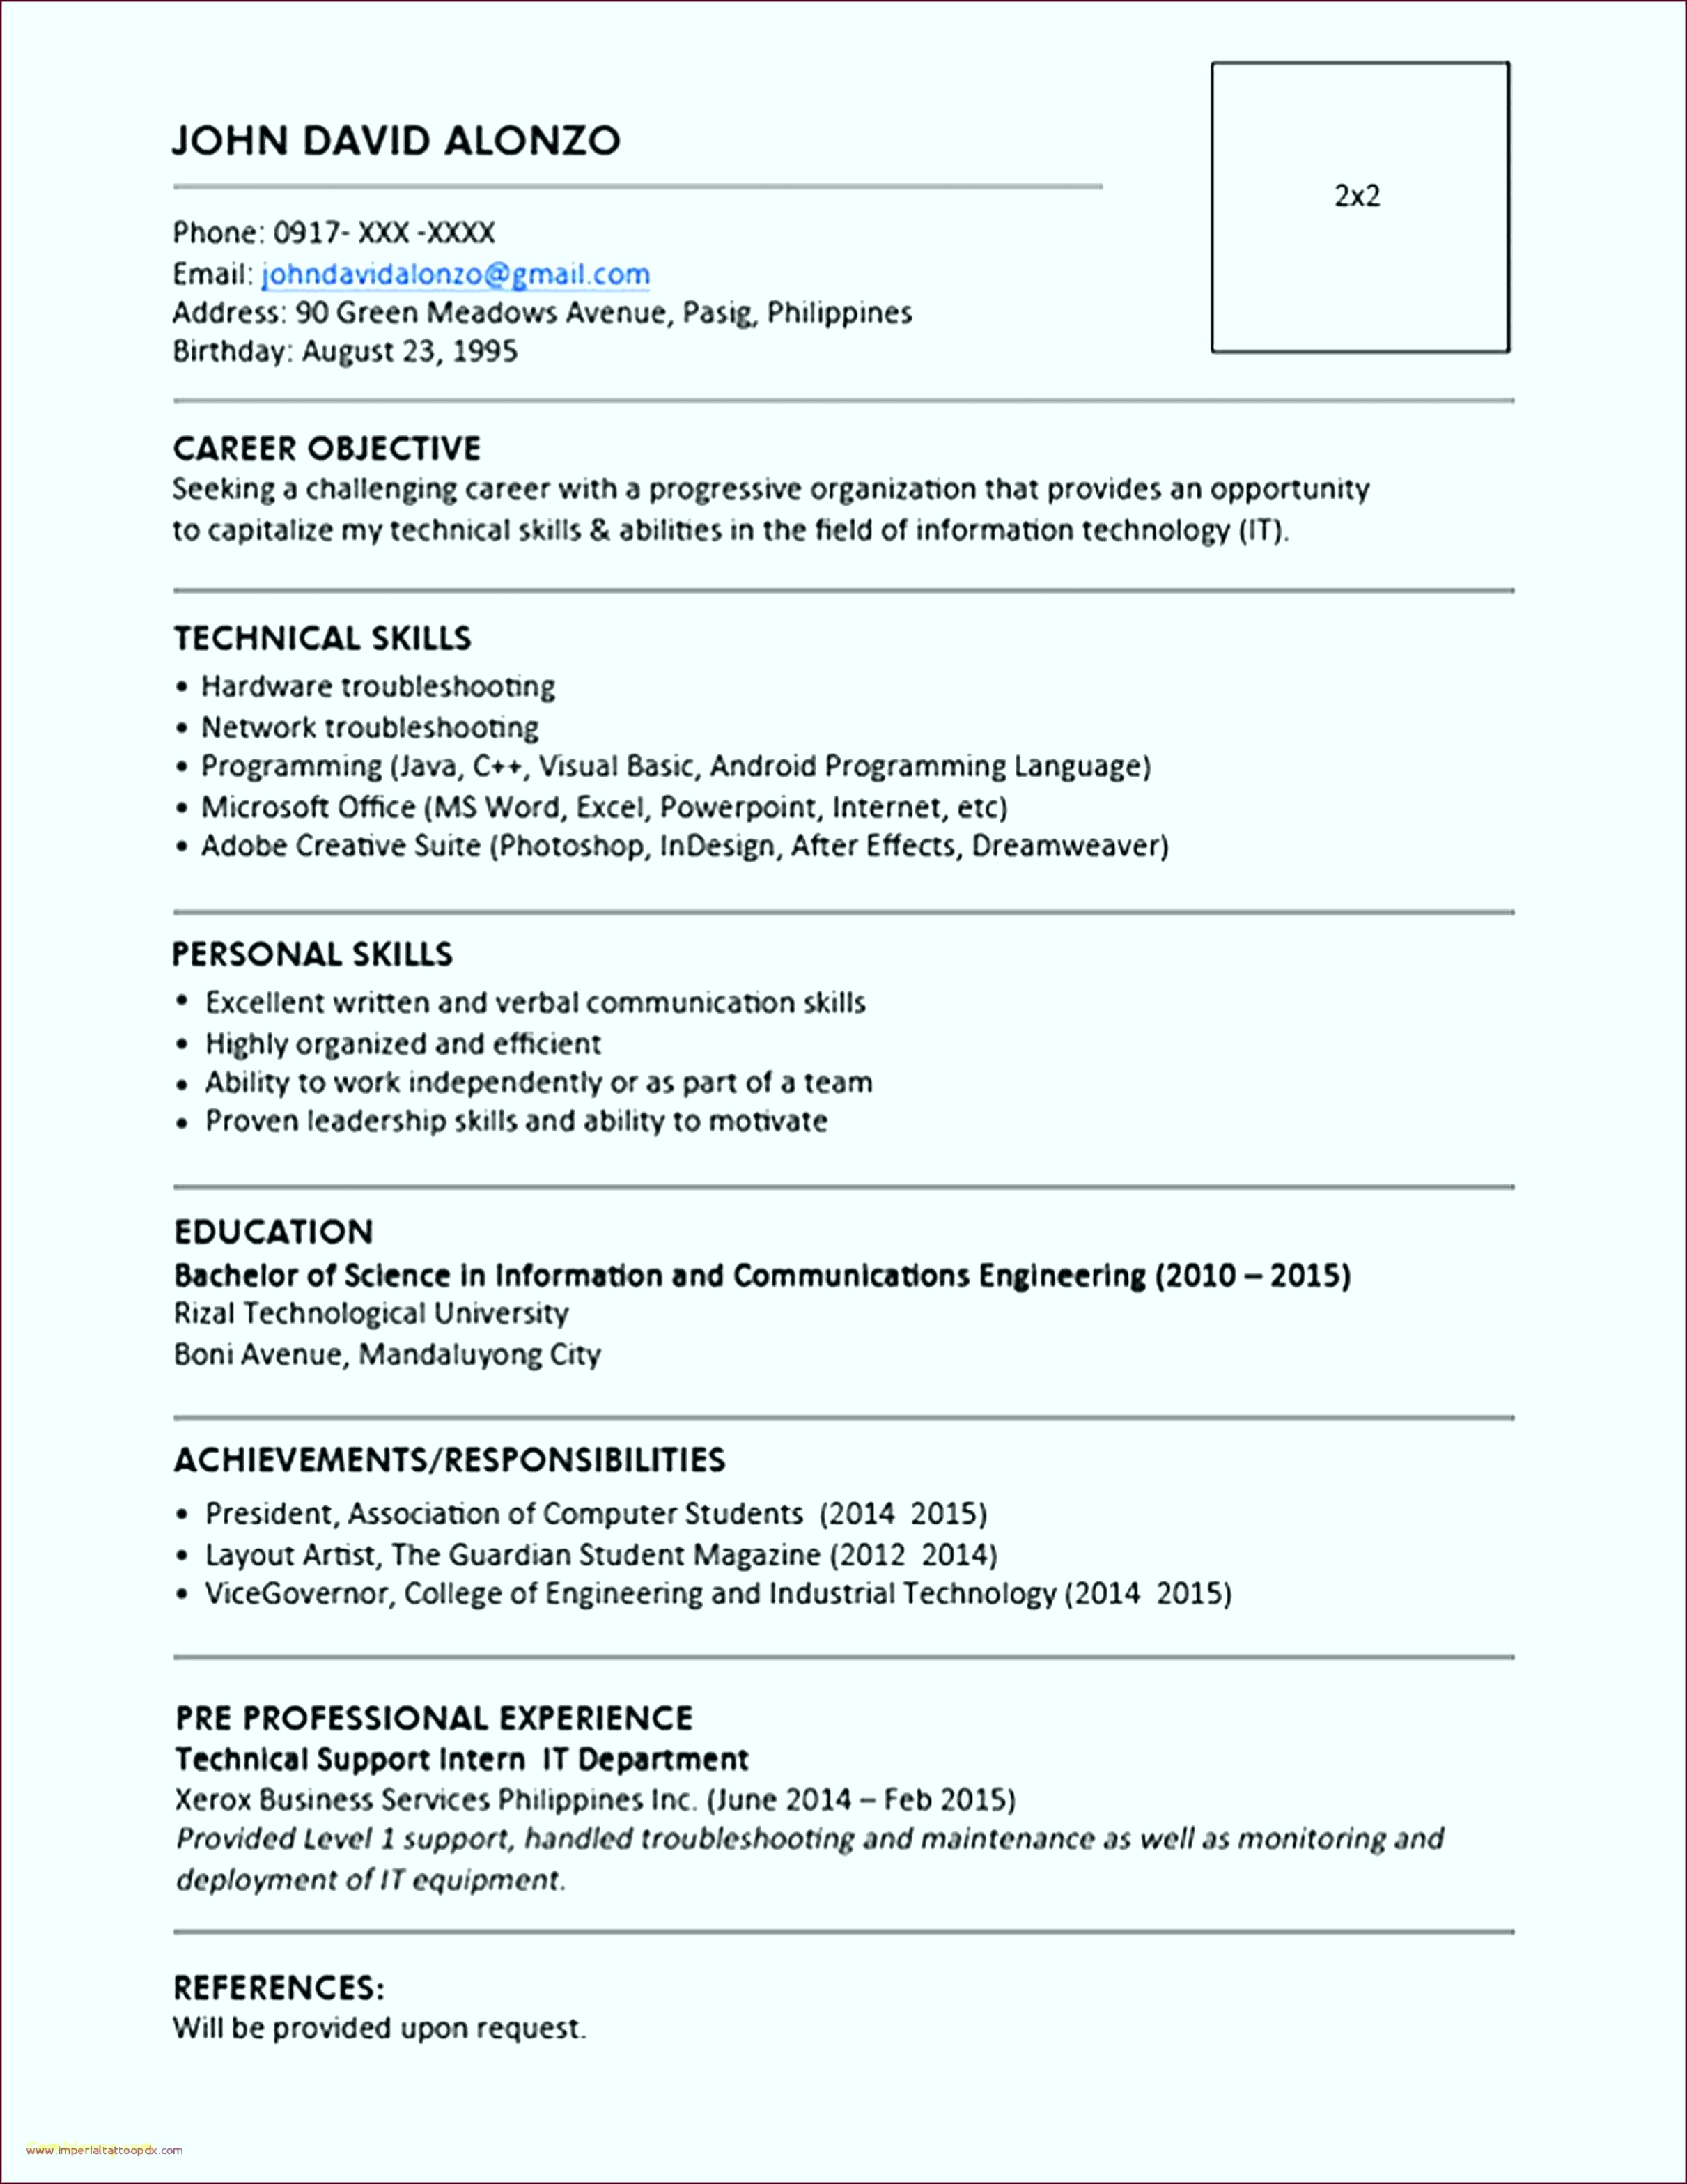 free powerpoint 2010 free resume layout templates in cv layout template word new templates 0d examples uiwar